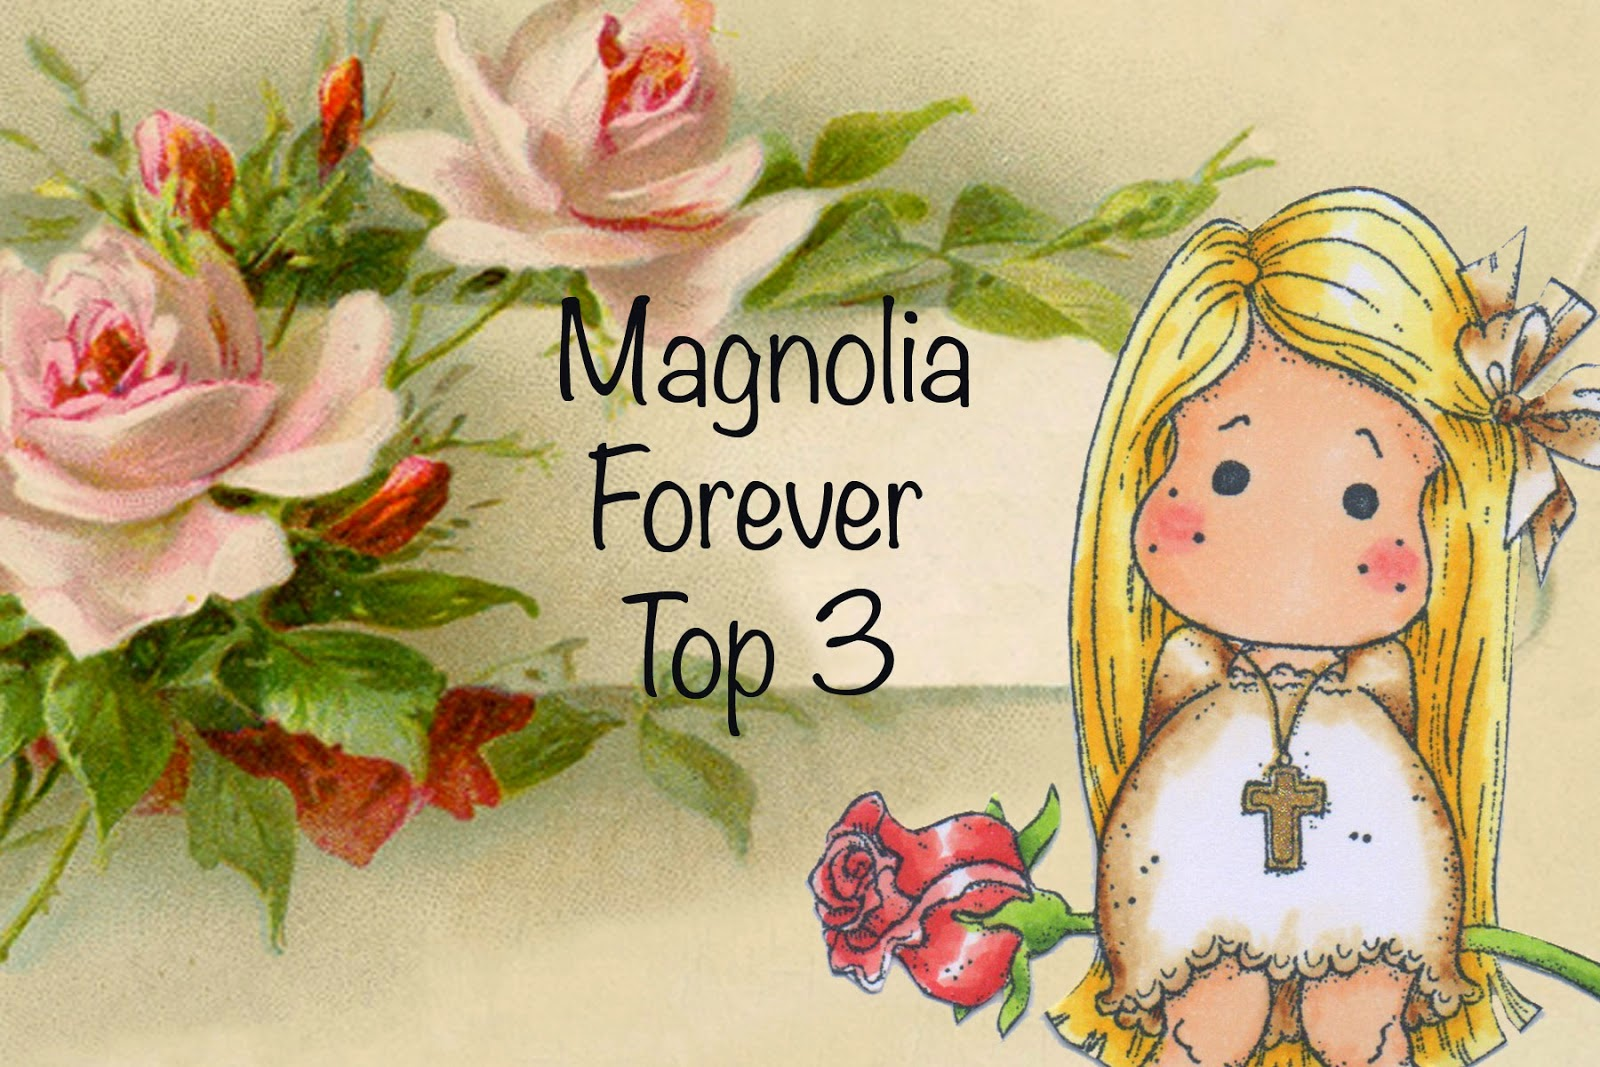 Top 3 @ Magnolia Forever 16th April